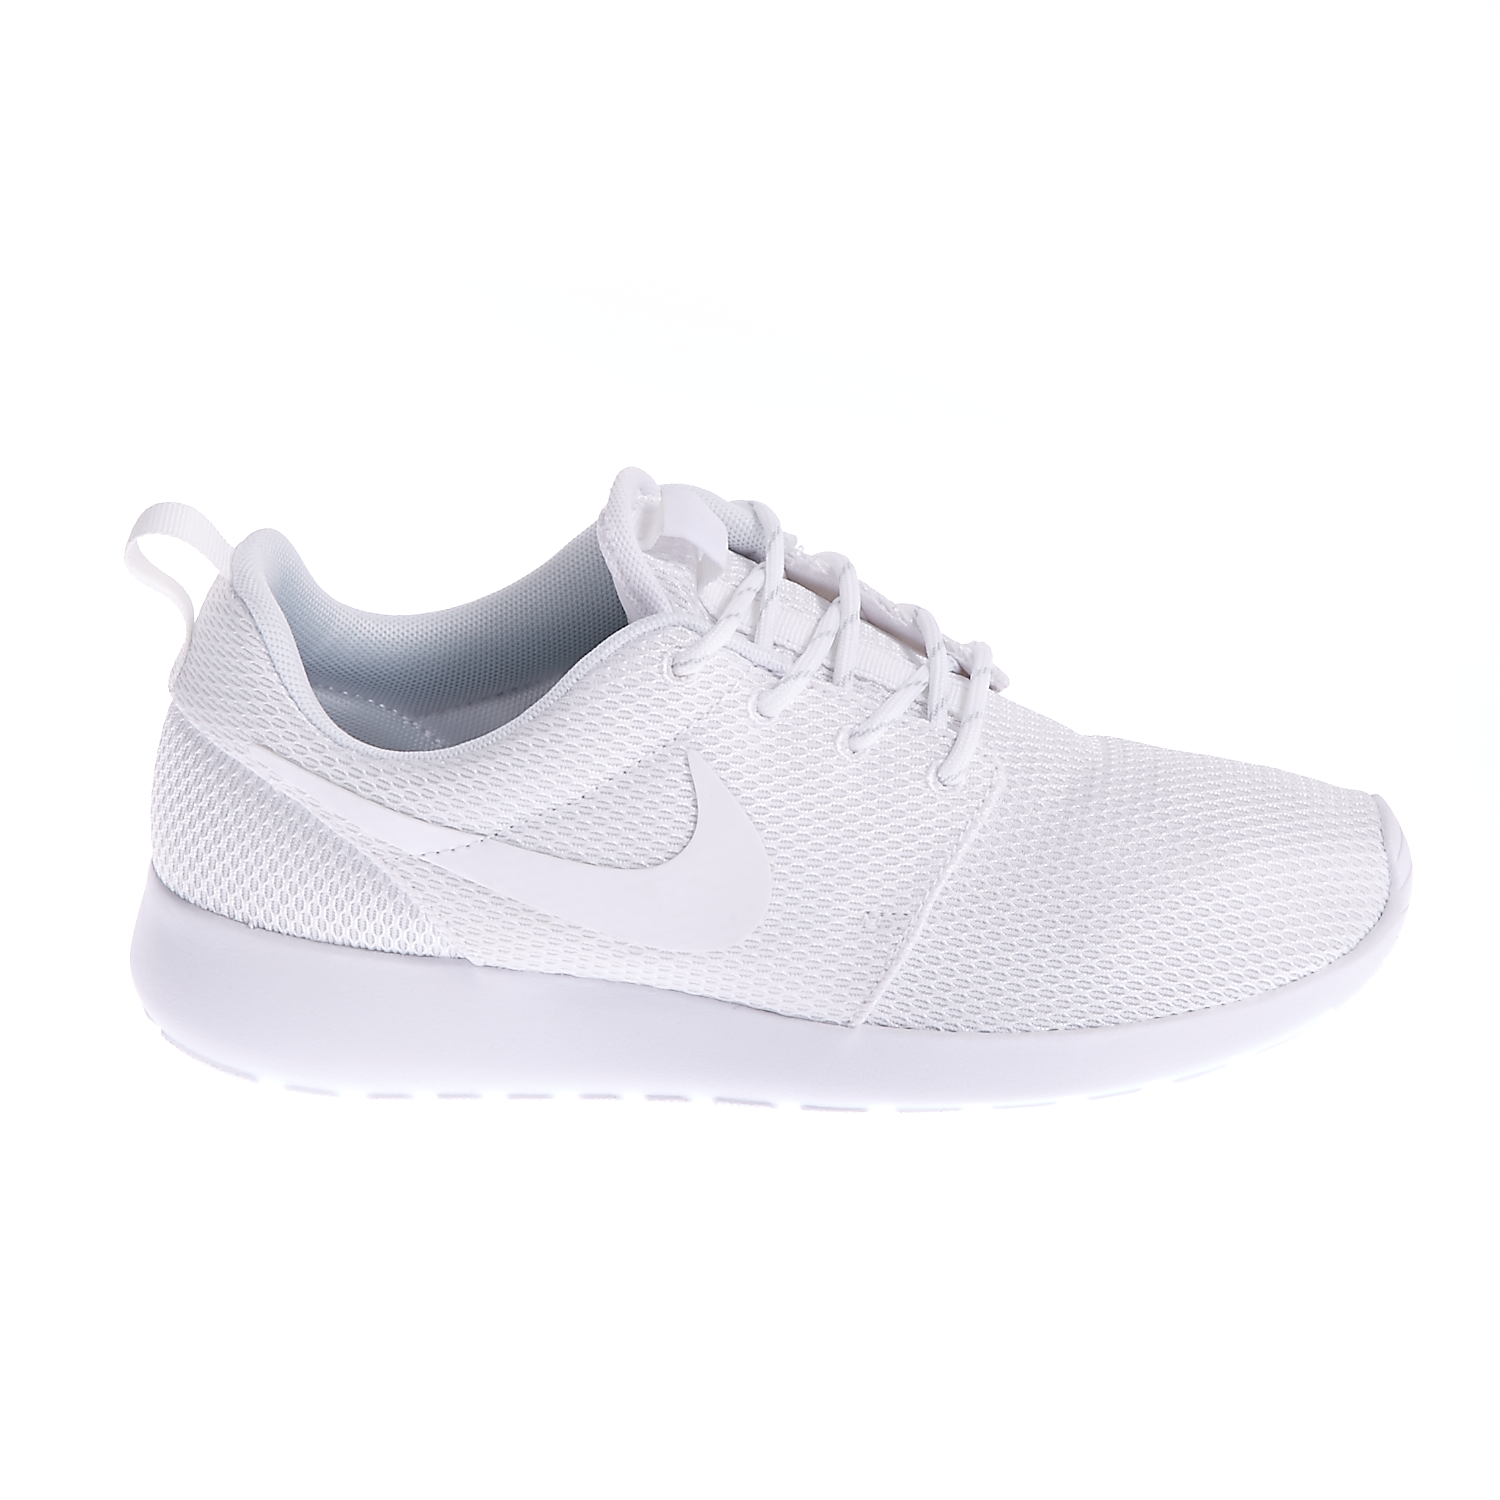 20289b2c873 NIKE - Γυναικεία παπούτσια NIKE ROSHE ONE λευκά. 91,90 € 56,90 €. Factory  Outlet